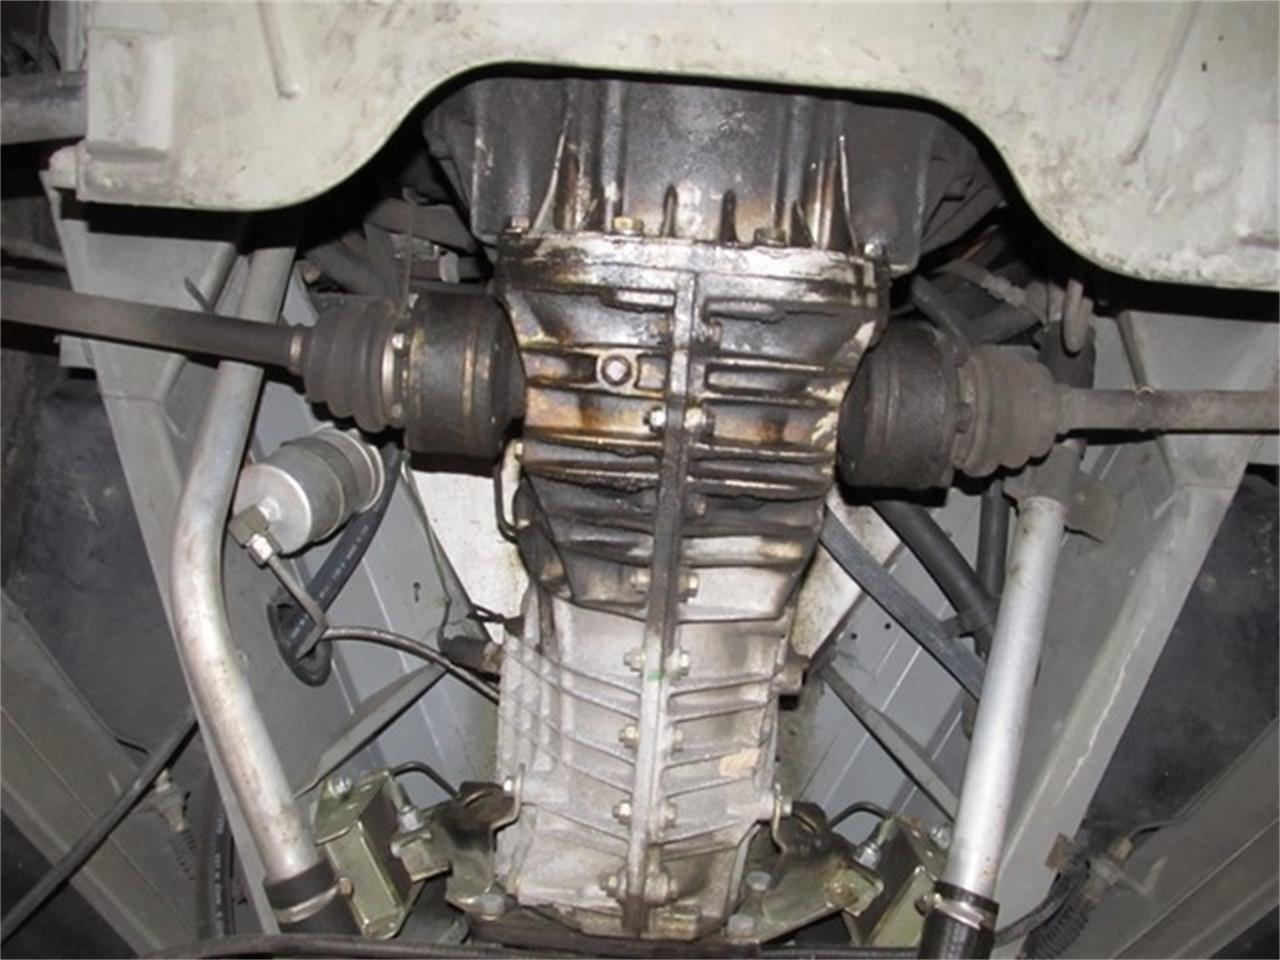 Large Picture of '81 DeLorean DMC-12 - $28,500.00 Offered by TX Collector Classic Cars - ET8B